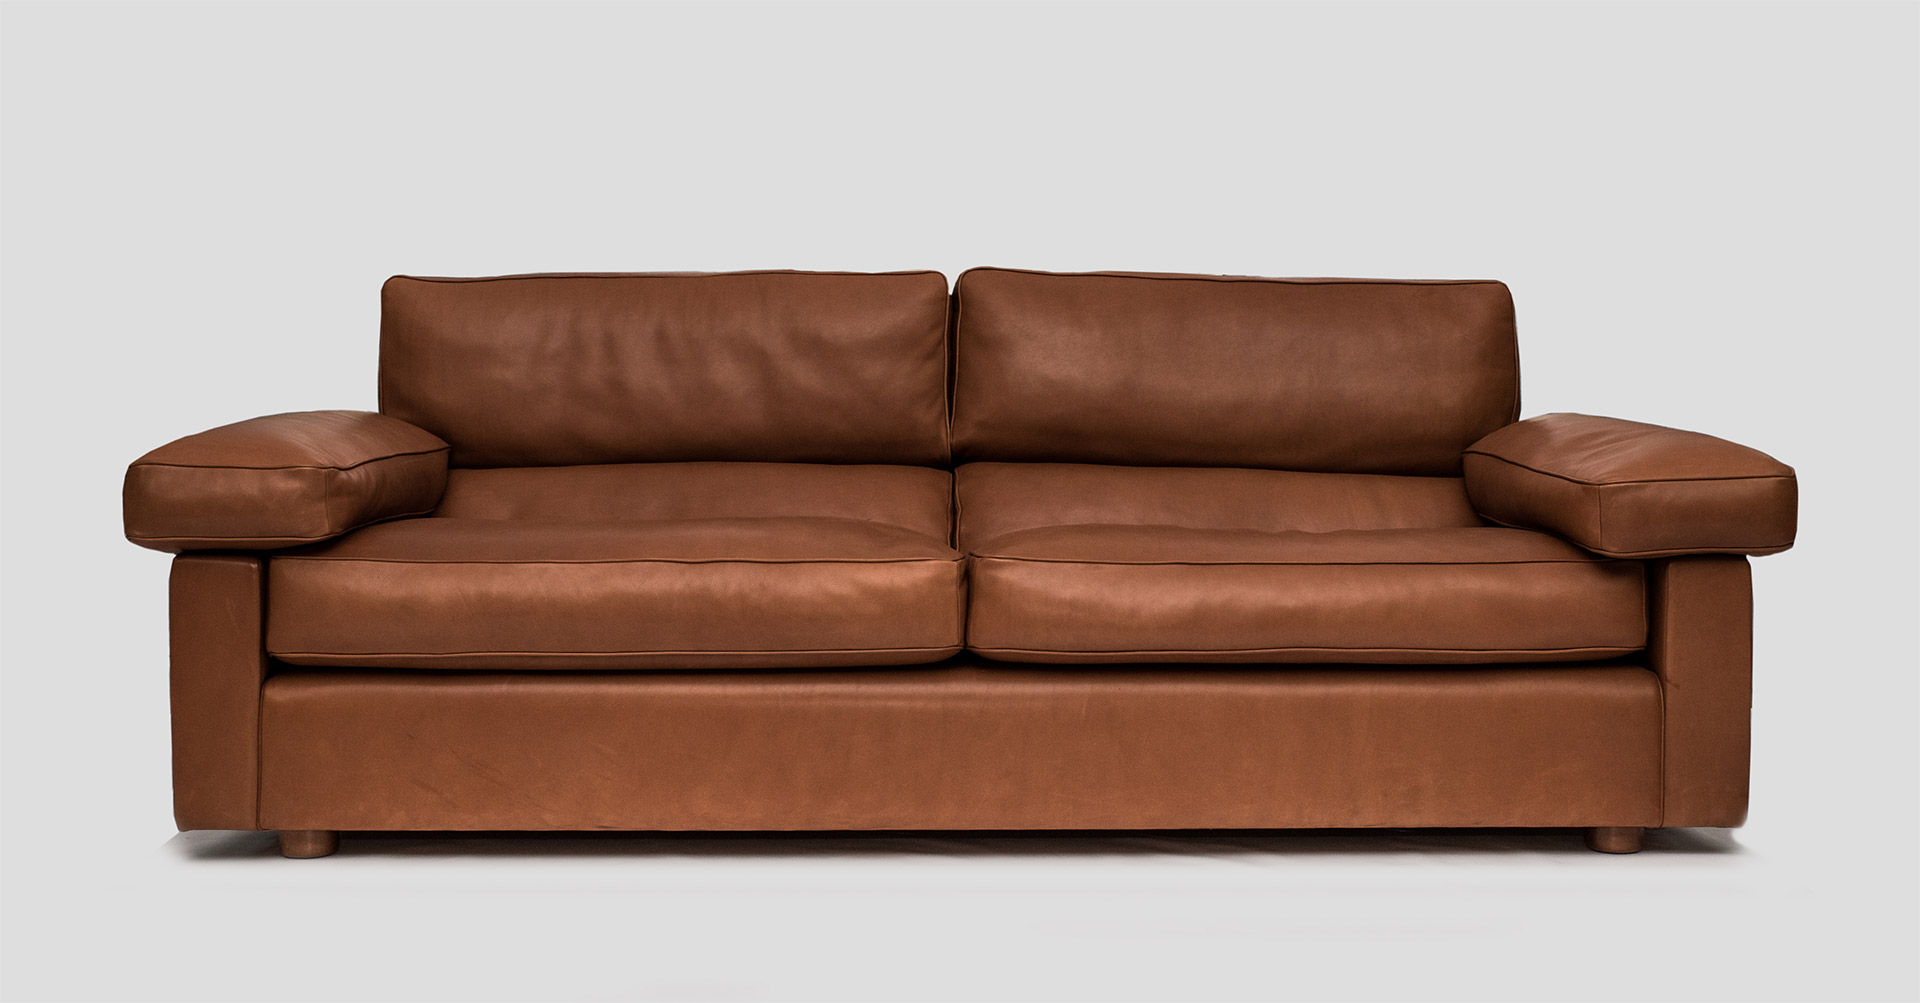 Tailored sofa made in Italy